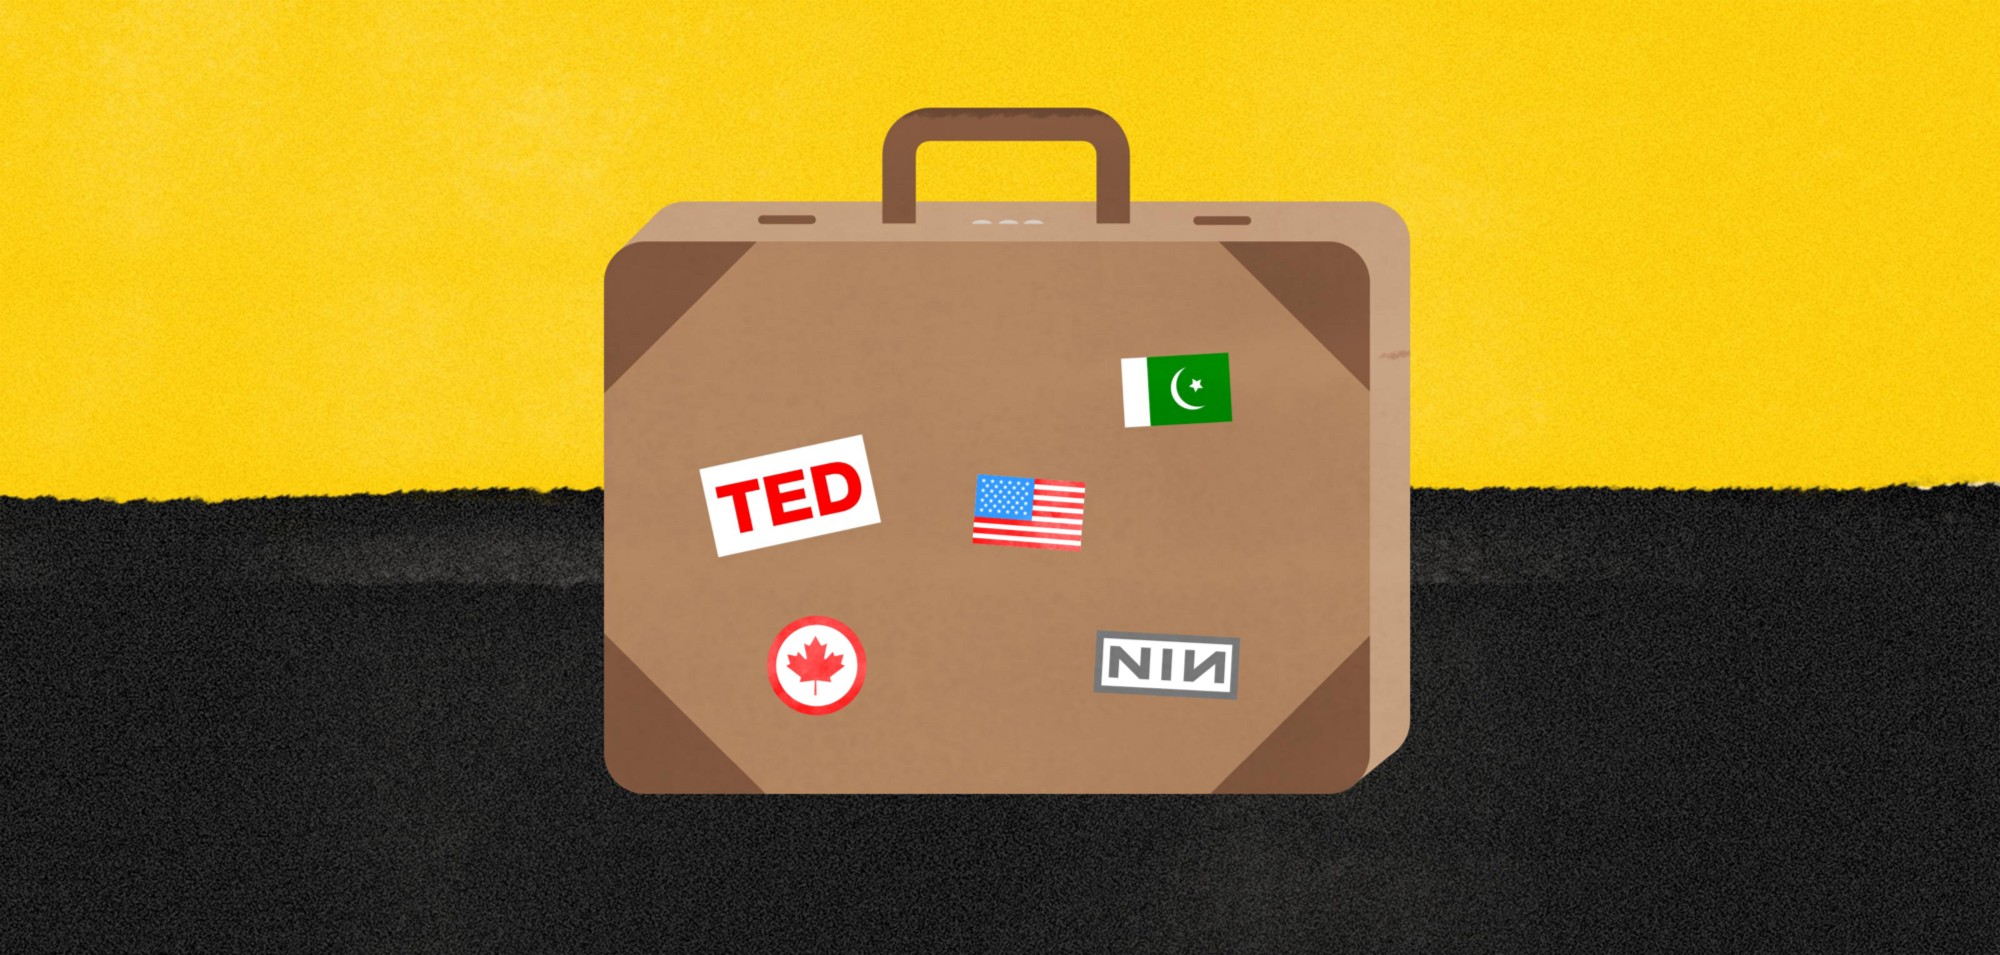 The TED Fellows have found a new home—they will be sharing their personal stories on Medium. Here, a piece of art created by Safwat Saleem for a story on what to pack for TED. Illustration: Safwat Saleem